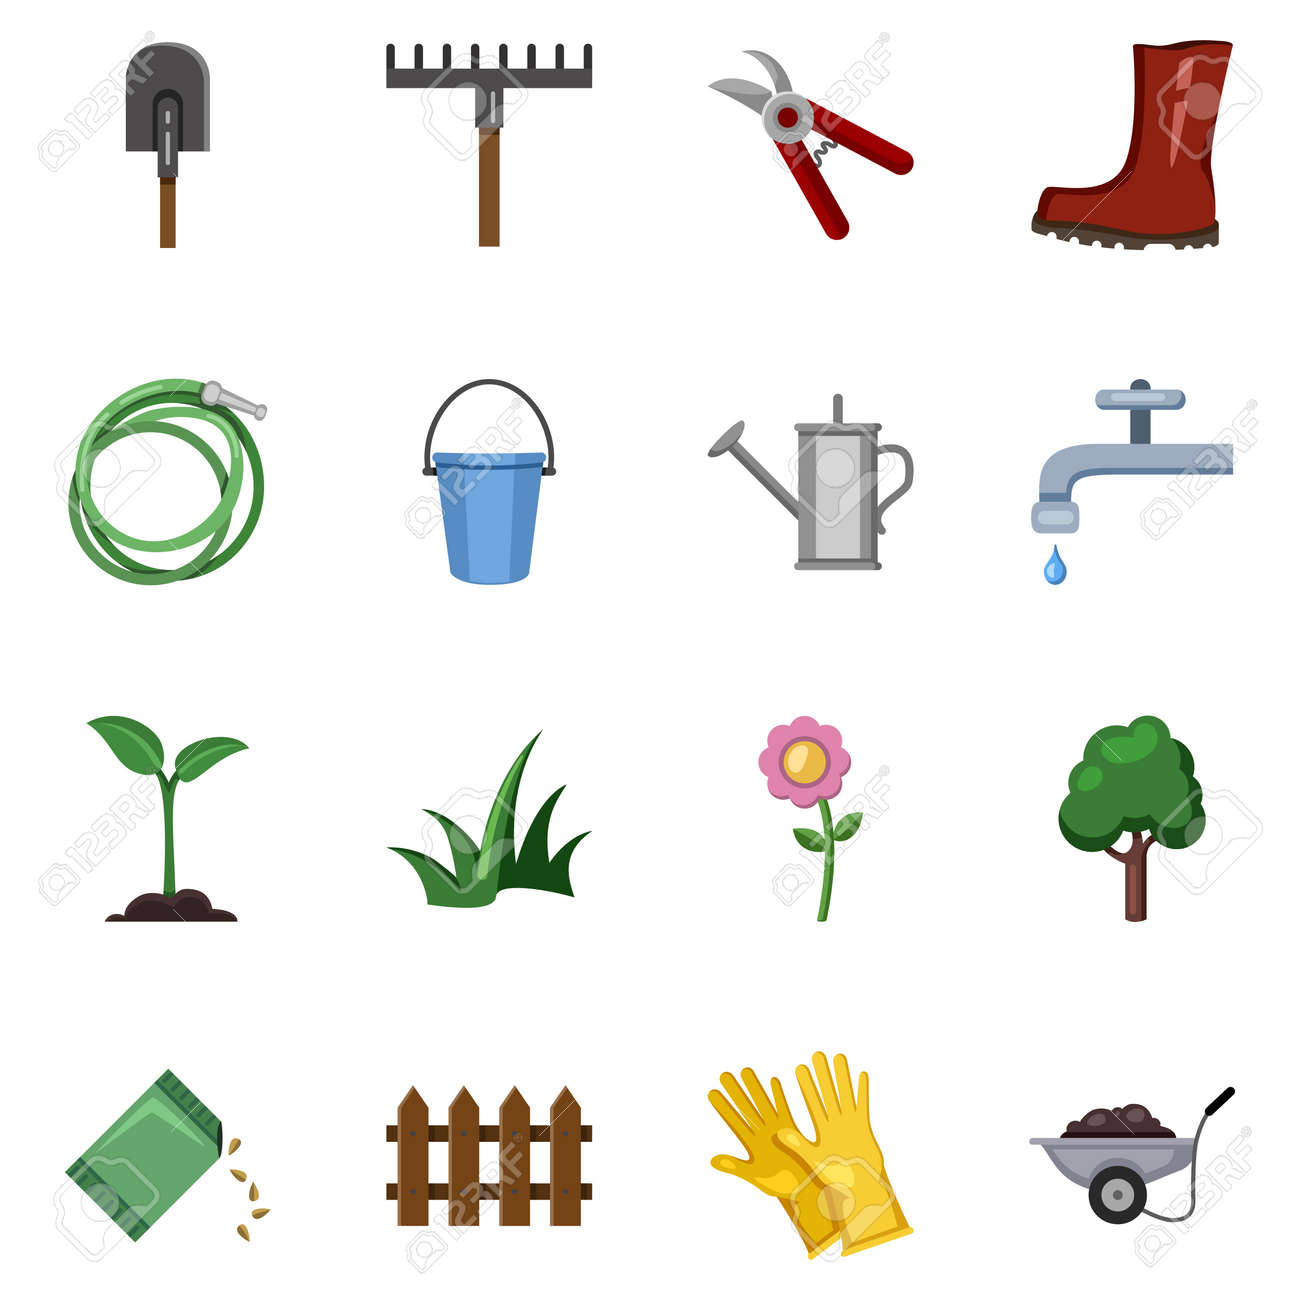 Vector Set of Garden Icons. Color Flat Gardening Tools and Plants - 169351013